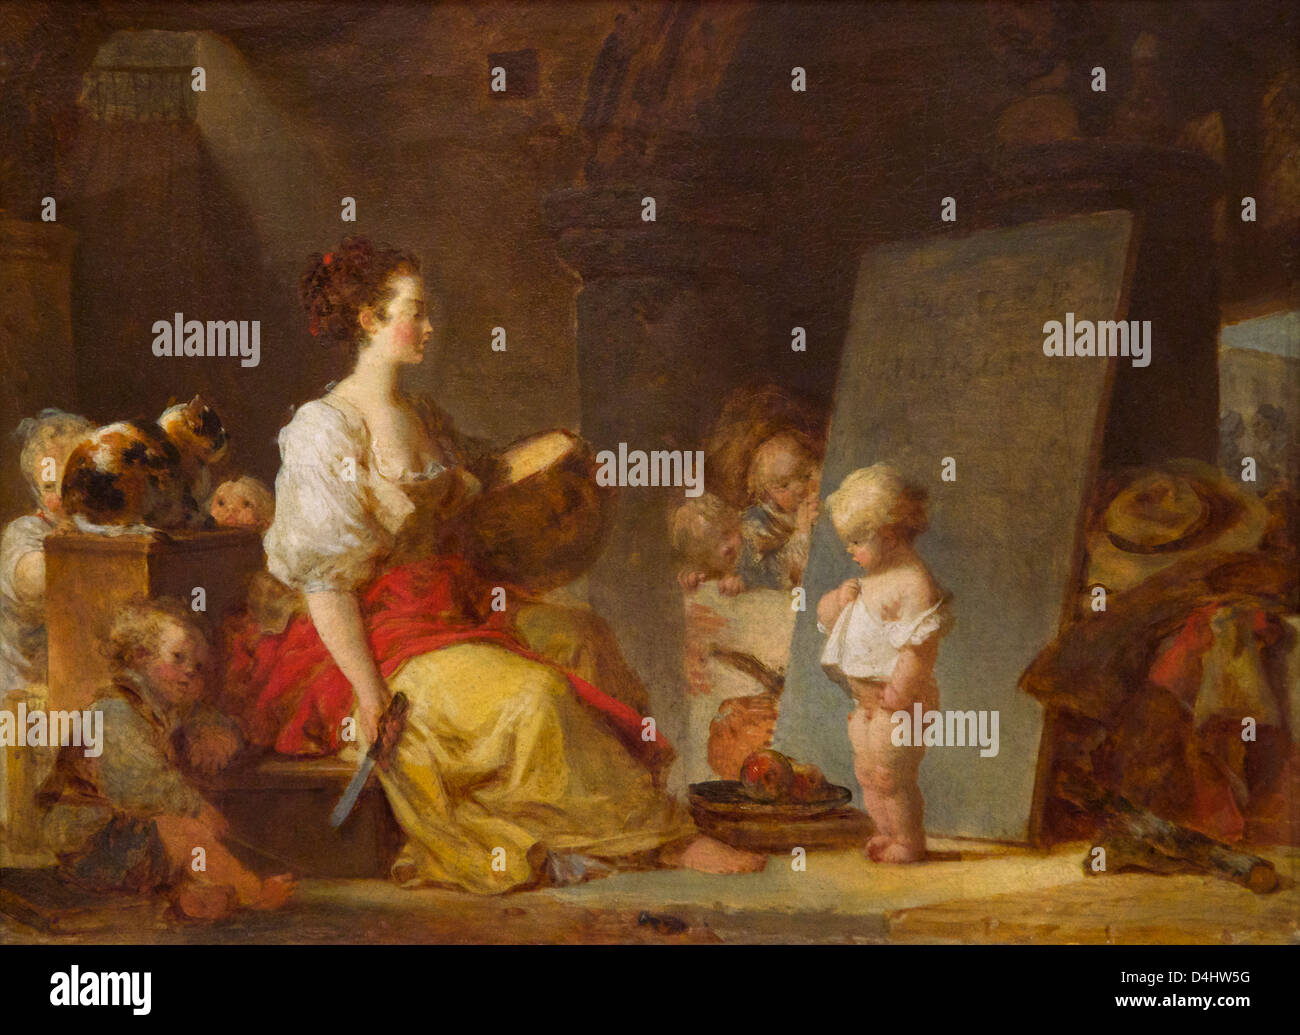 'Say Please', or Dites donc s'il vous plait by Jean-Honore Fragonard, circa 1780, Wallace Collection, - Stock Image